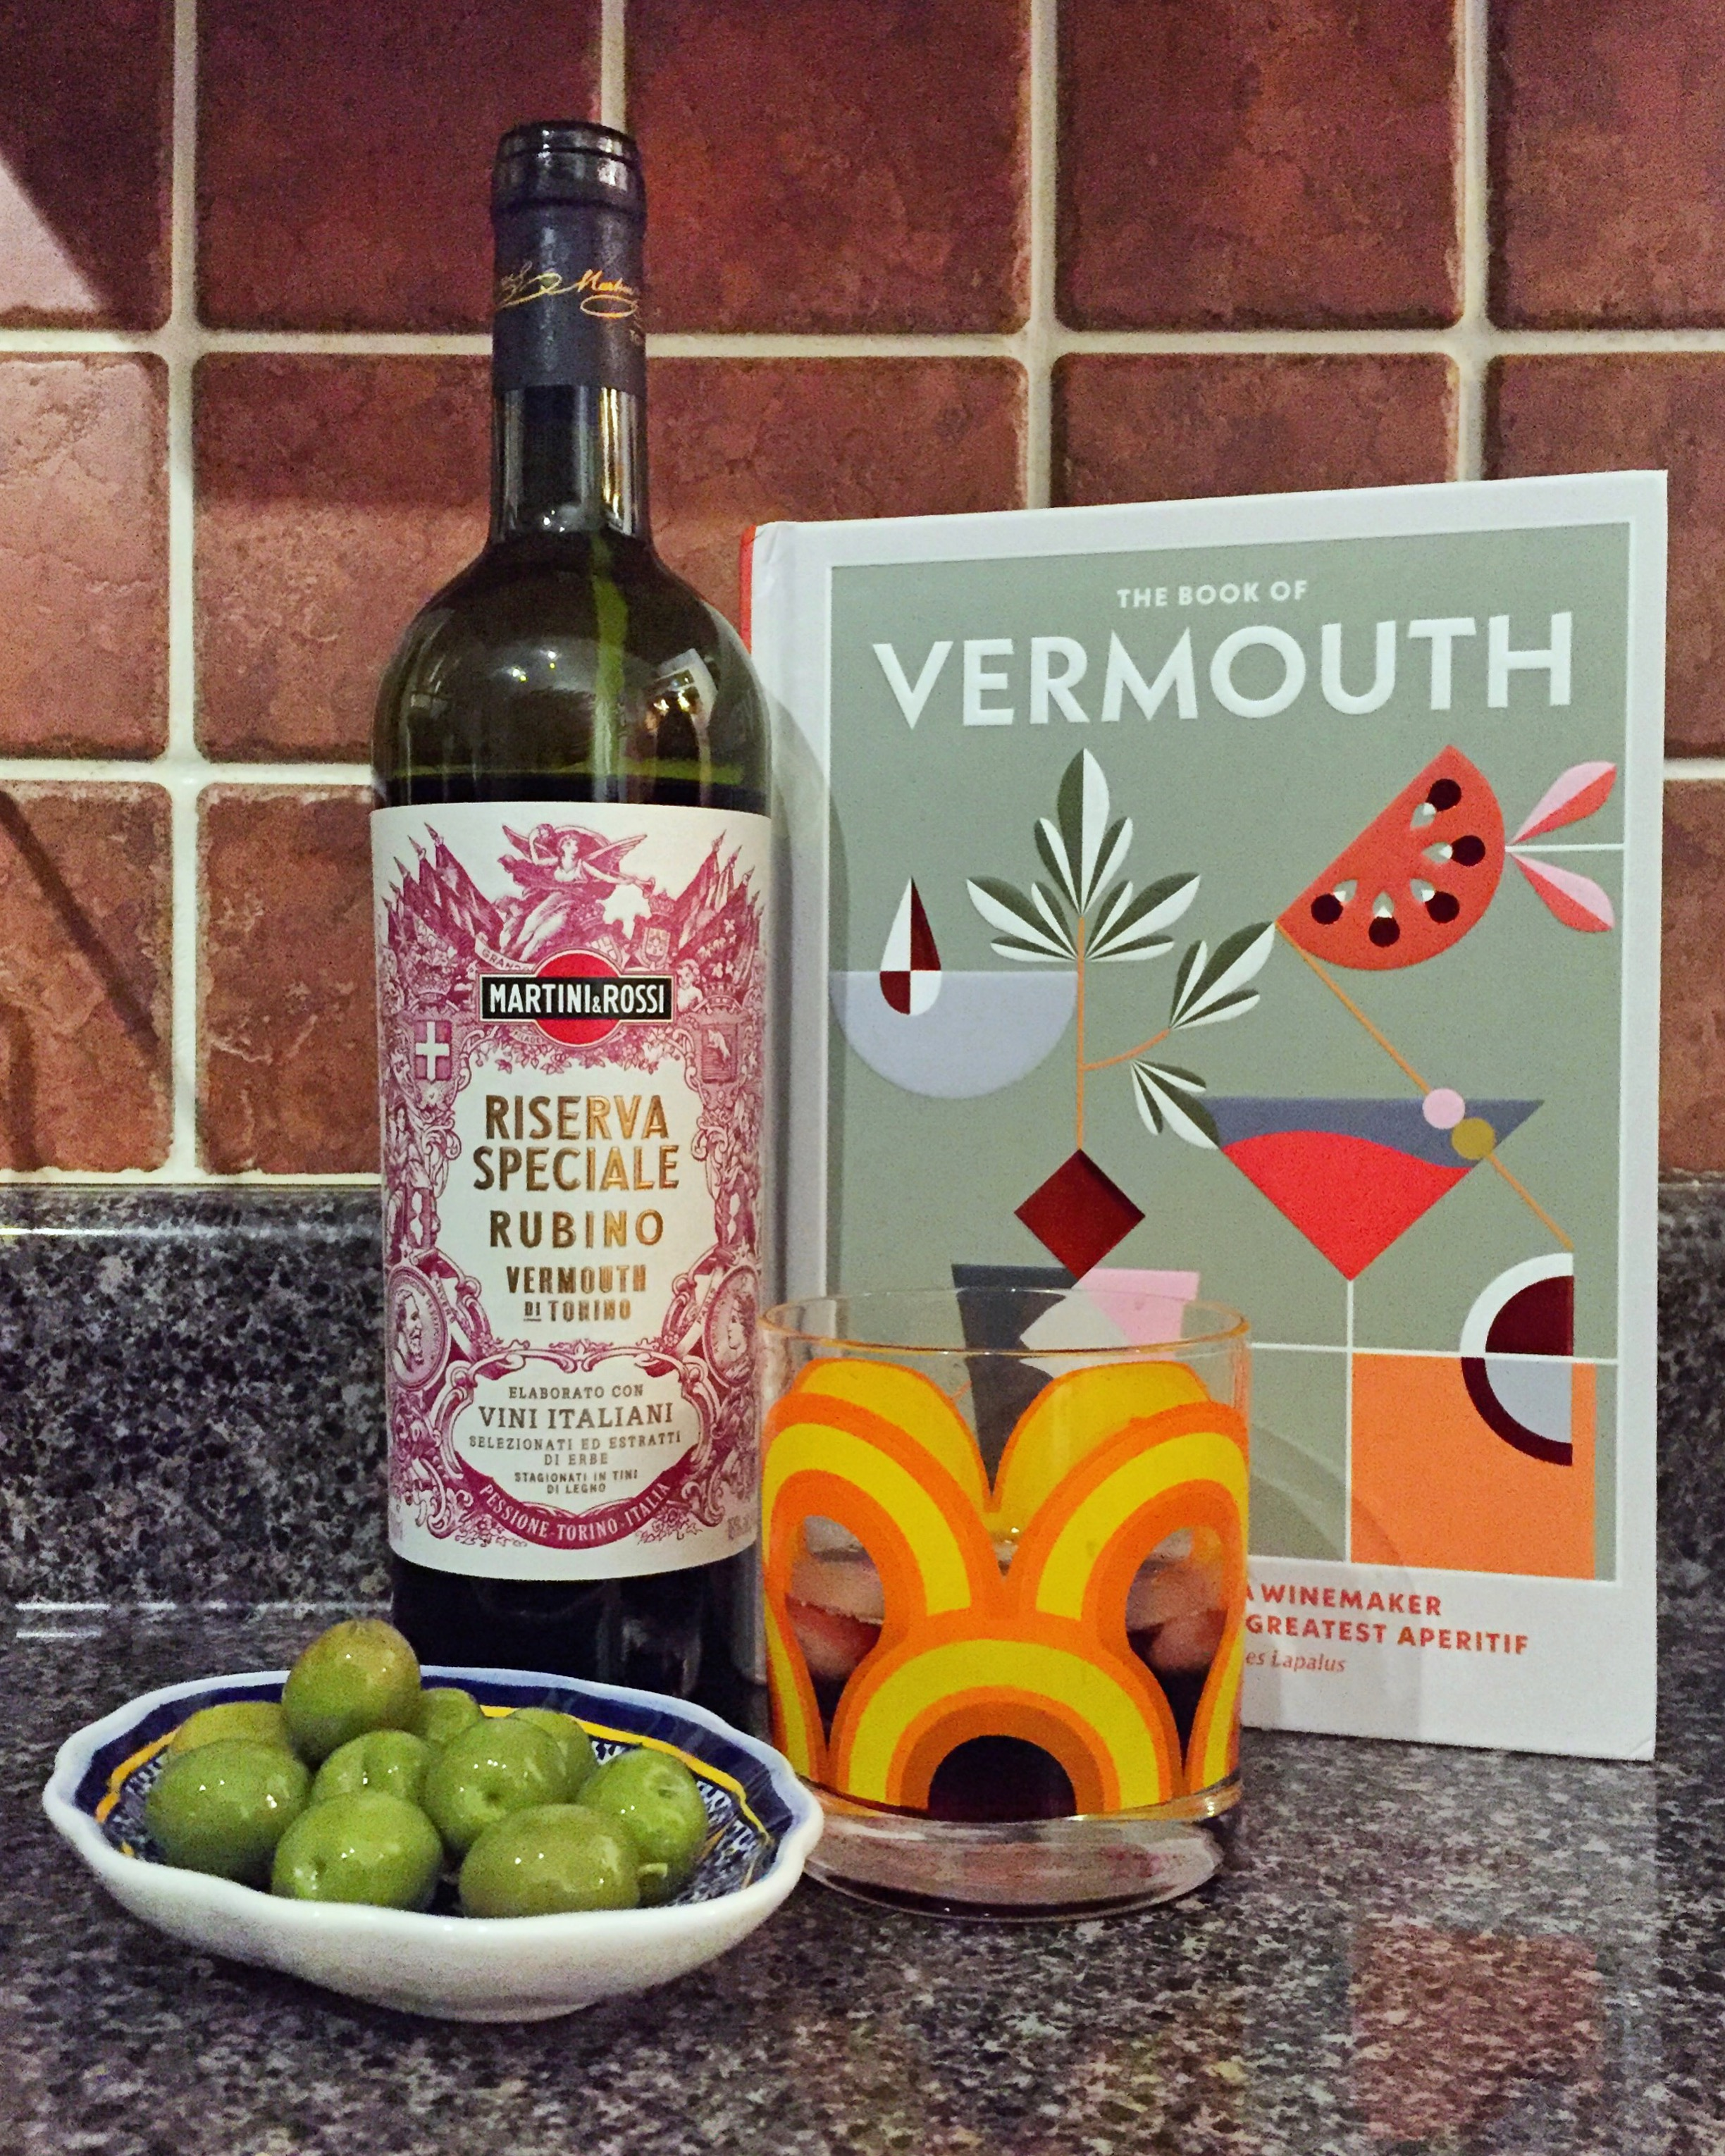 A Field Guide to Vermouth (Saveur)   Get to know the diverse styles and flavors of vermouth, an herbaceous fortified wine essential in cocktails like the martini, Manhattan, and Negroni